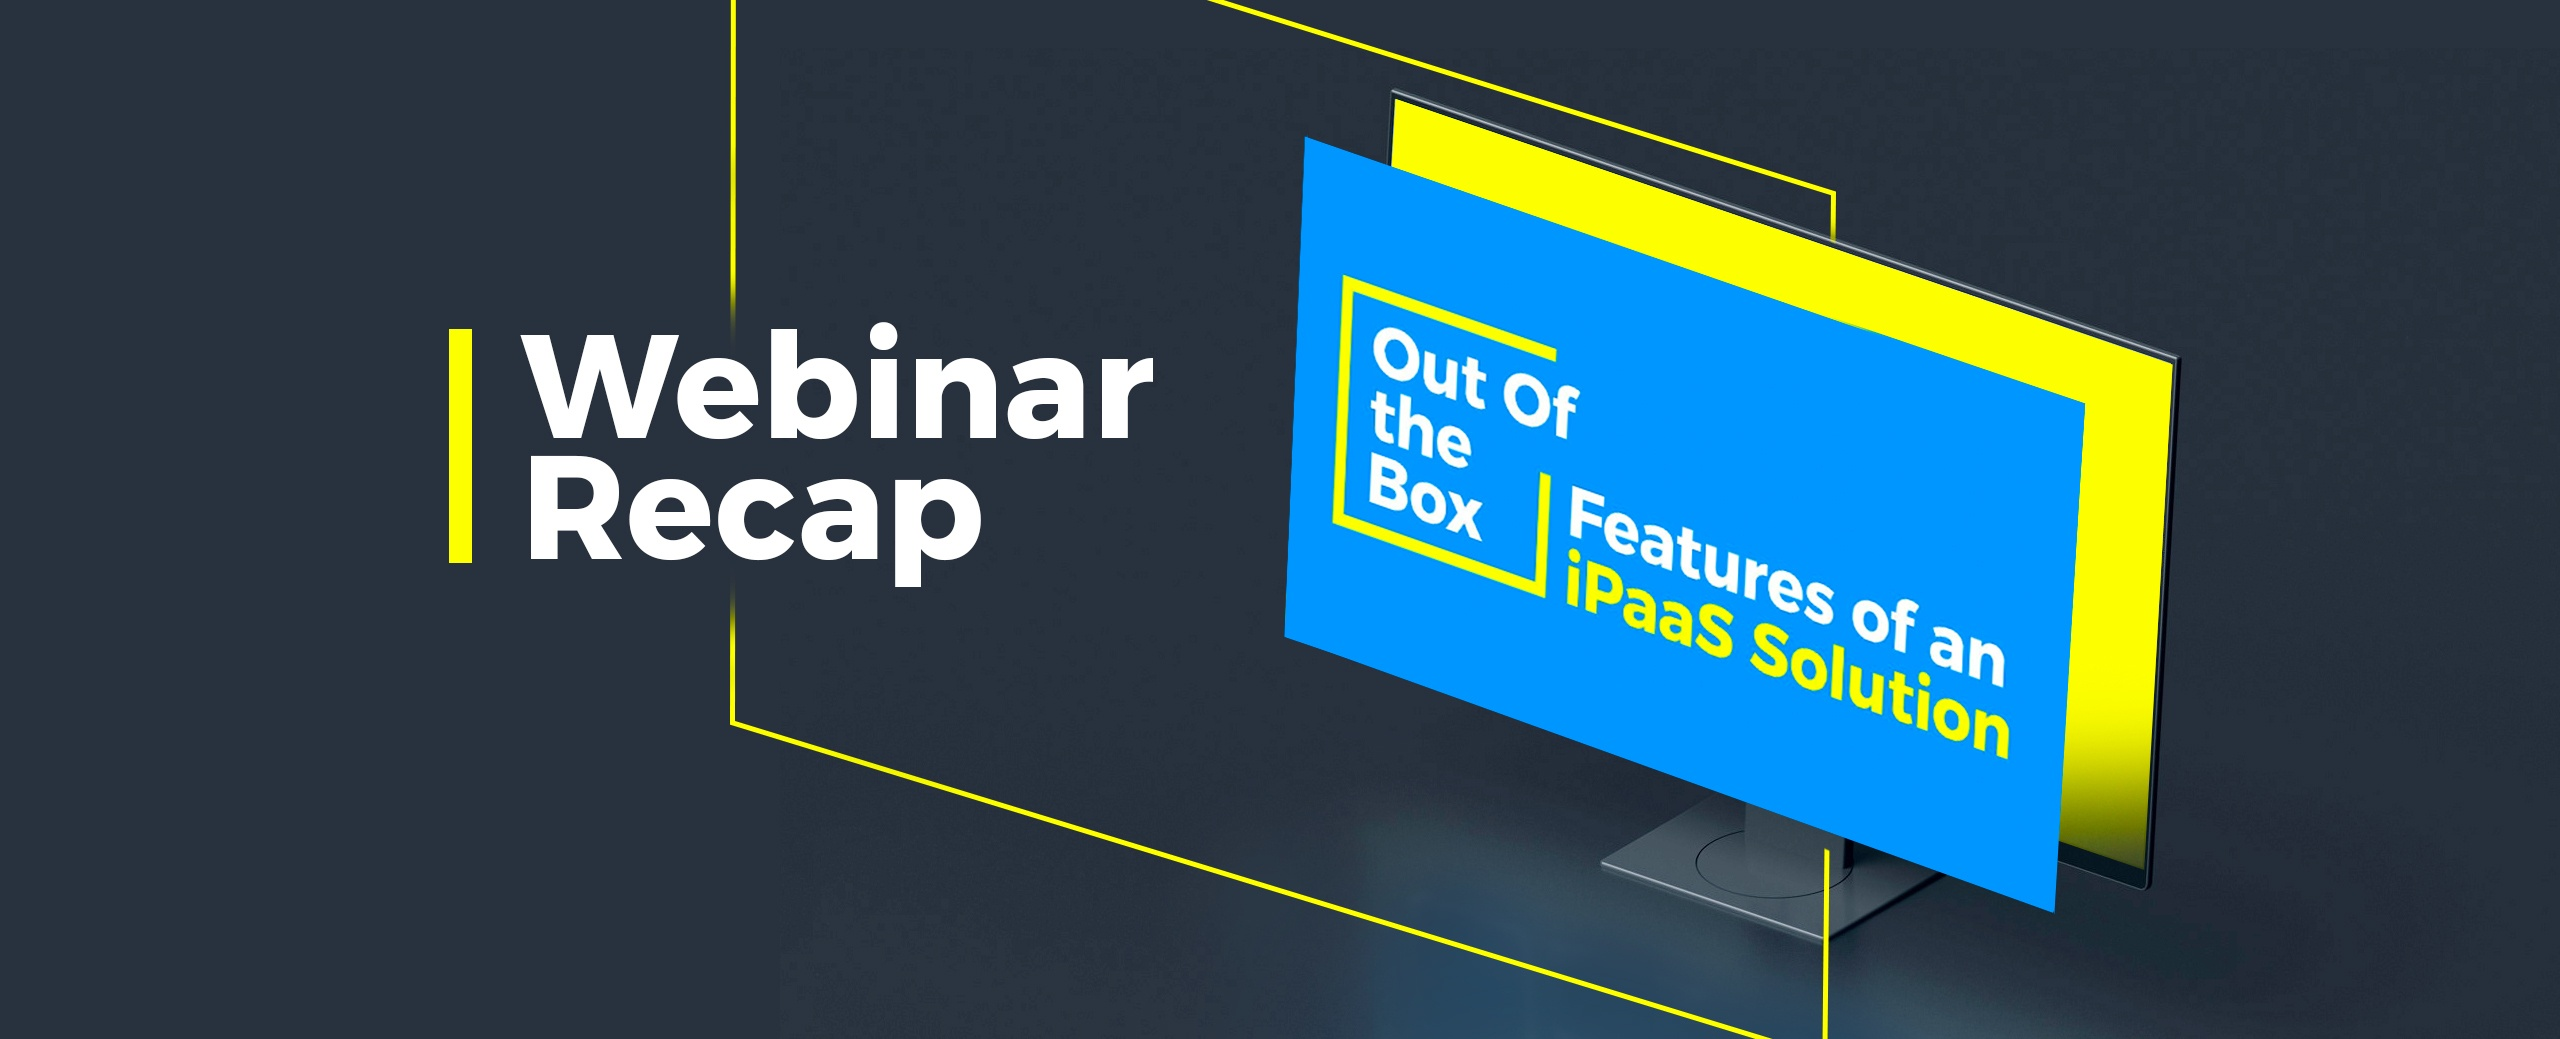 Webinar: Out of the Box Features of an iPaaS Solution